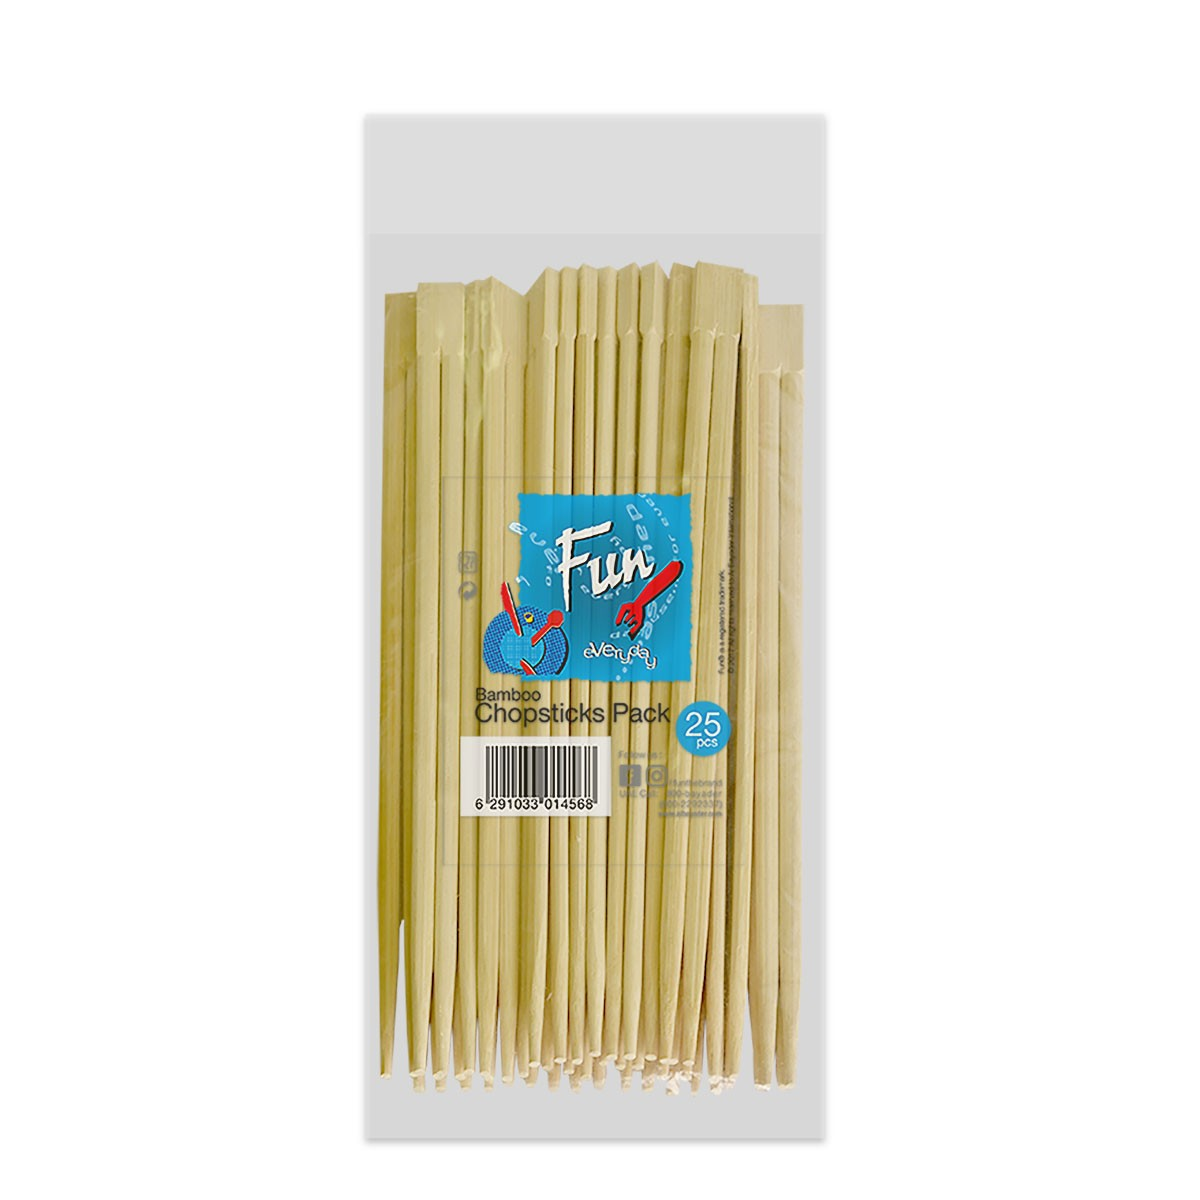 Fun® Bamboo Chopsticks 23cm | 25pcsx10pkts